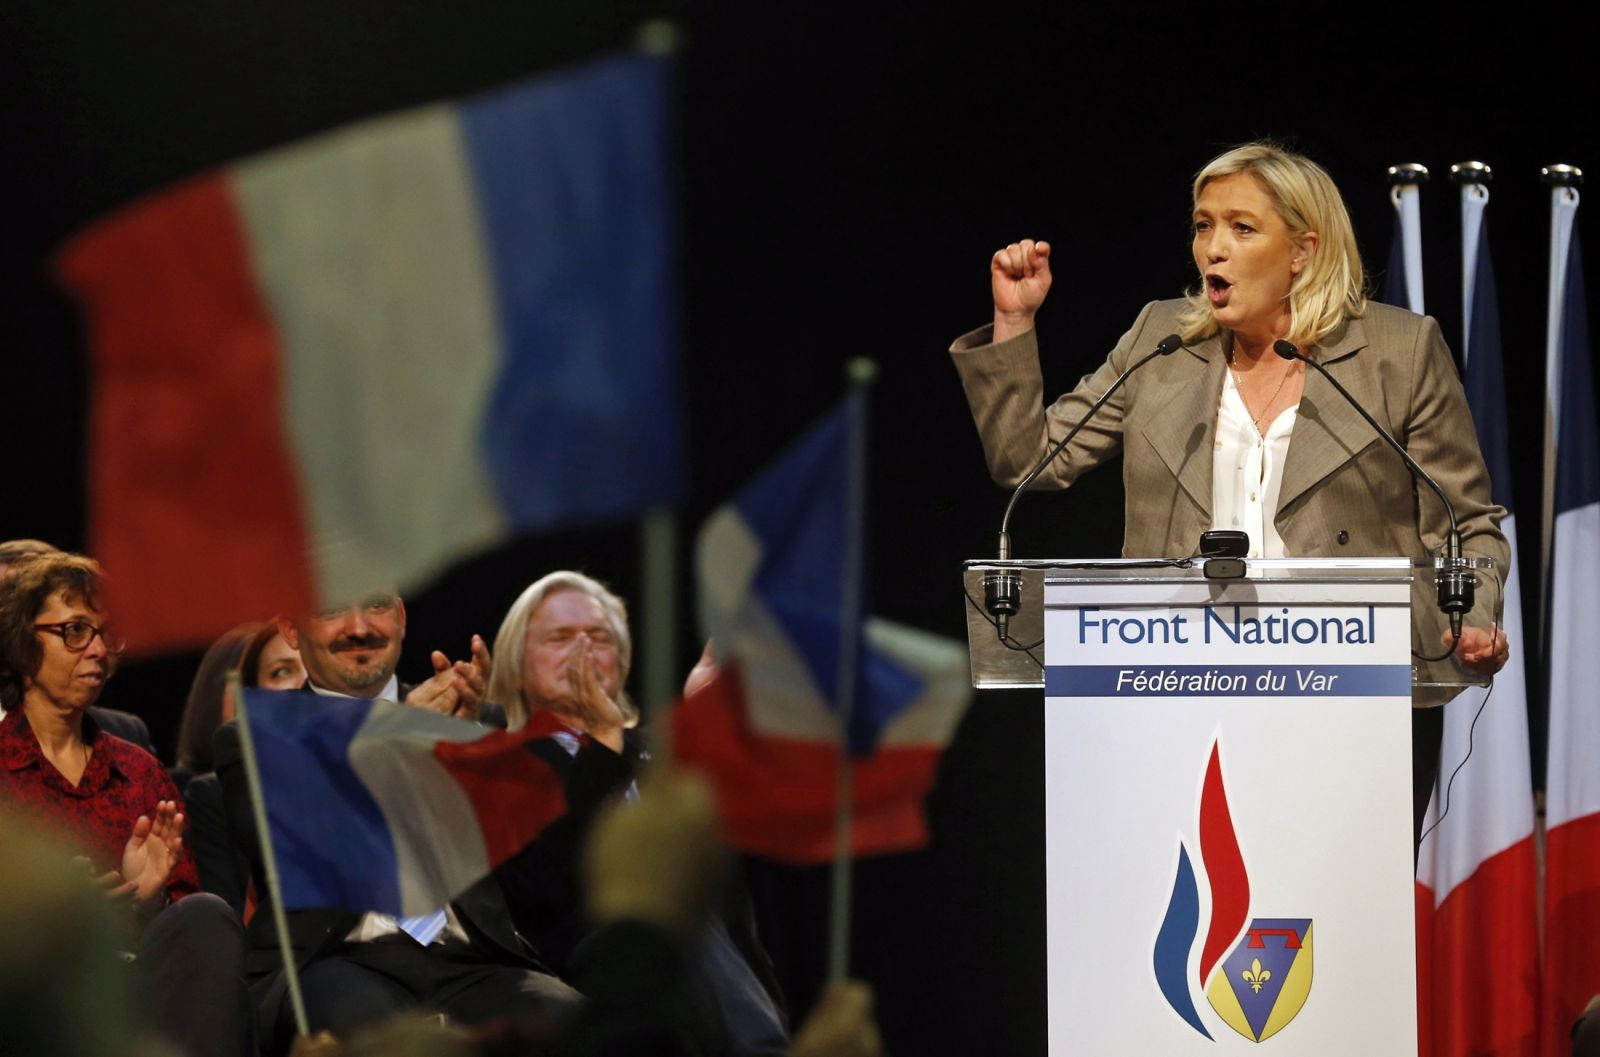 Le Pen says US is no ally